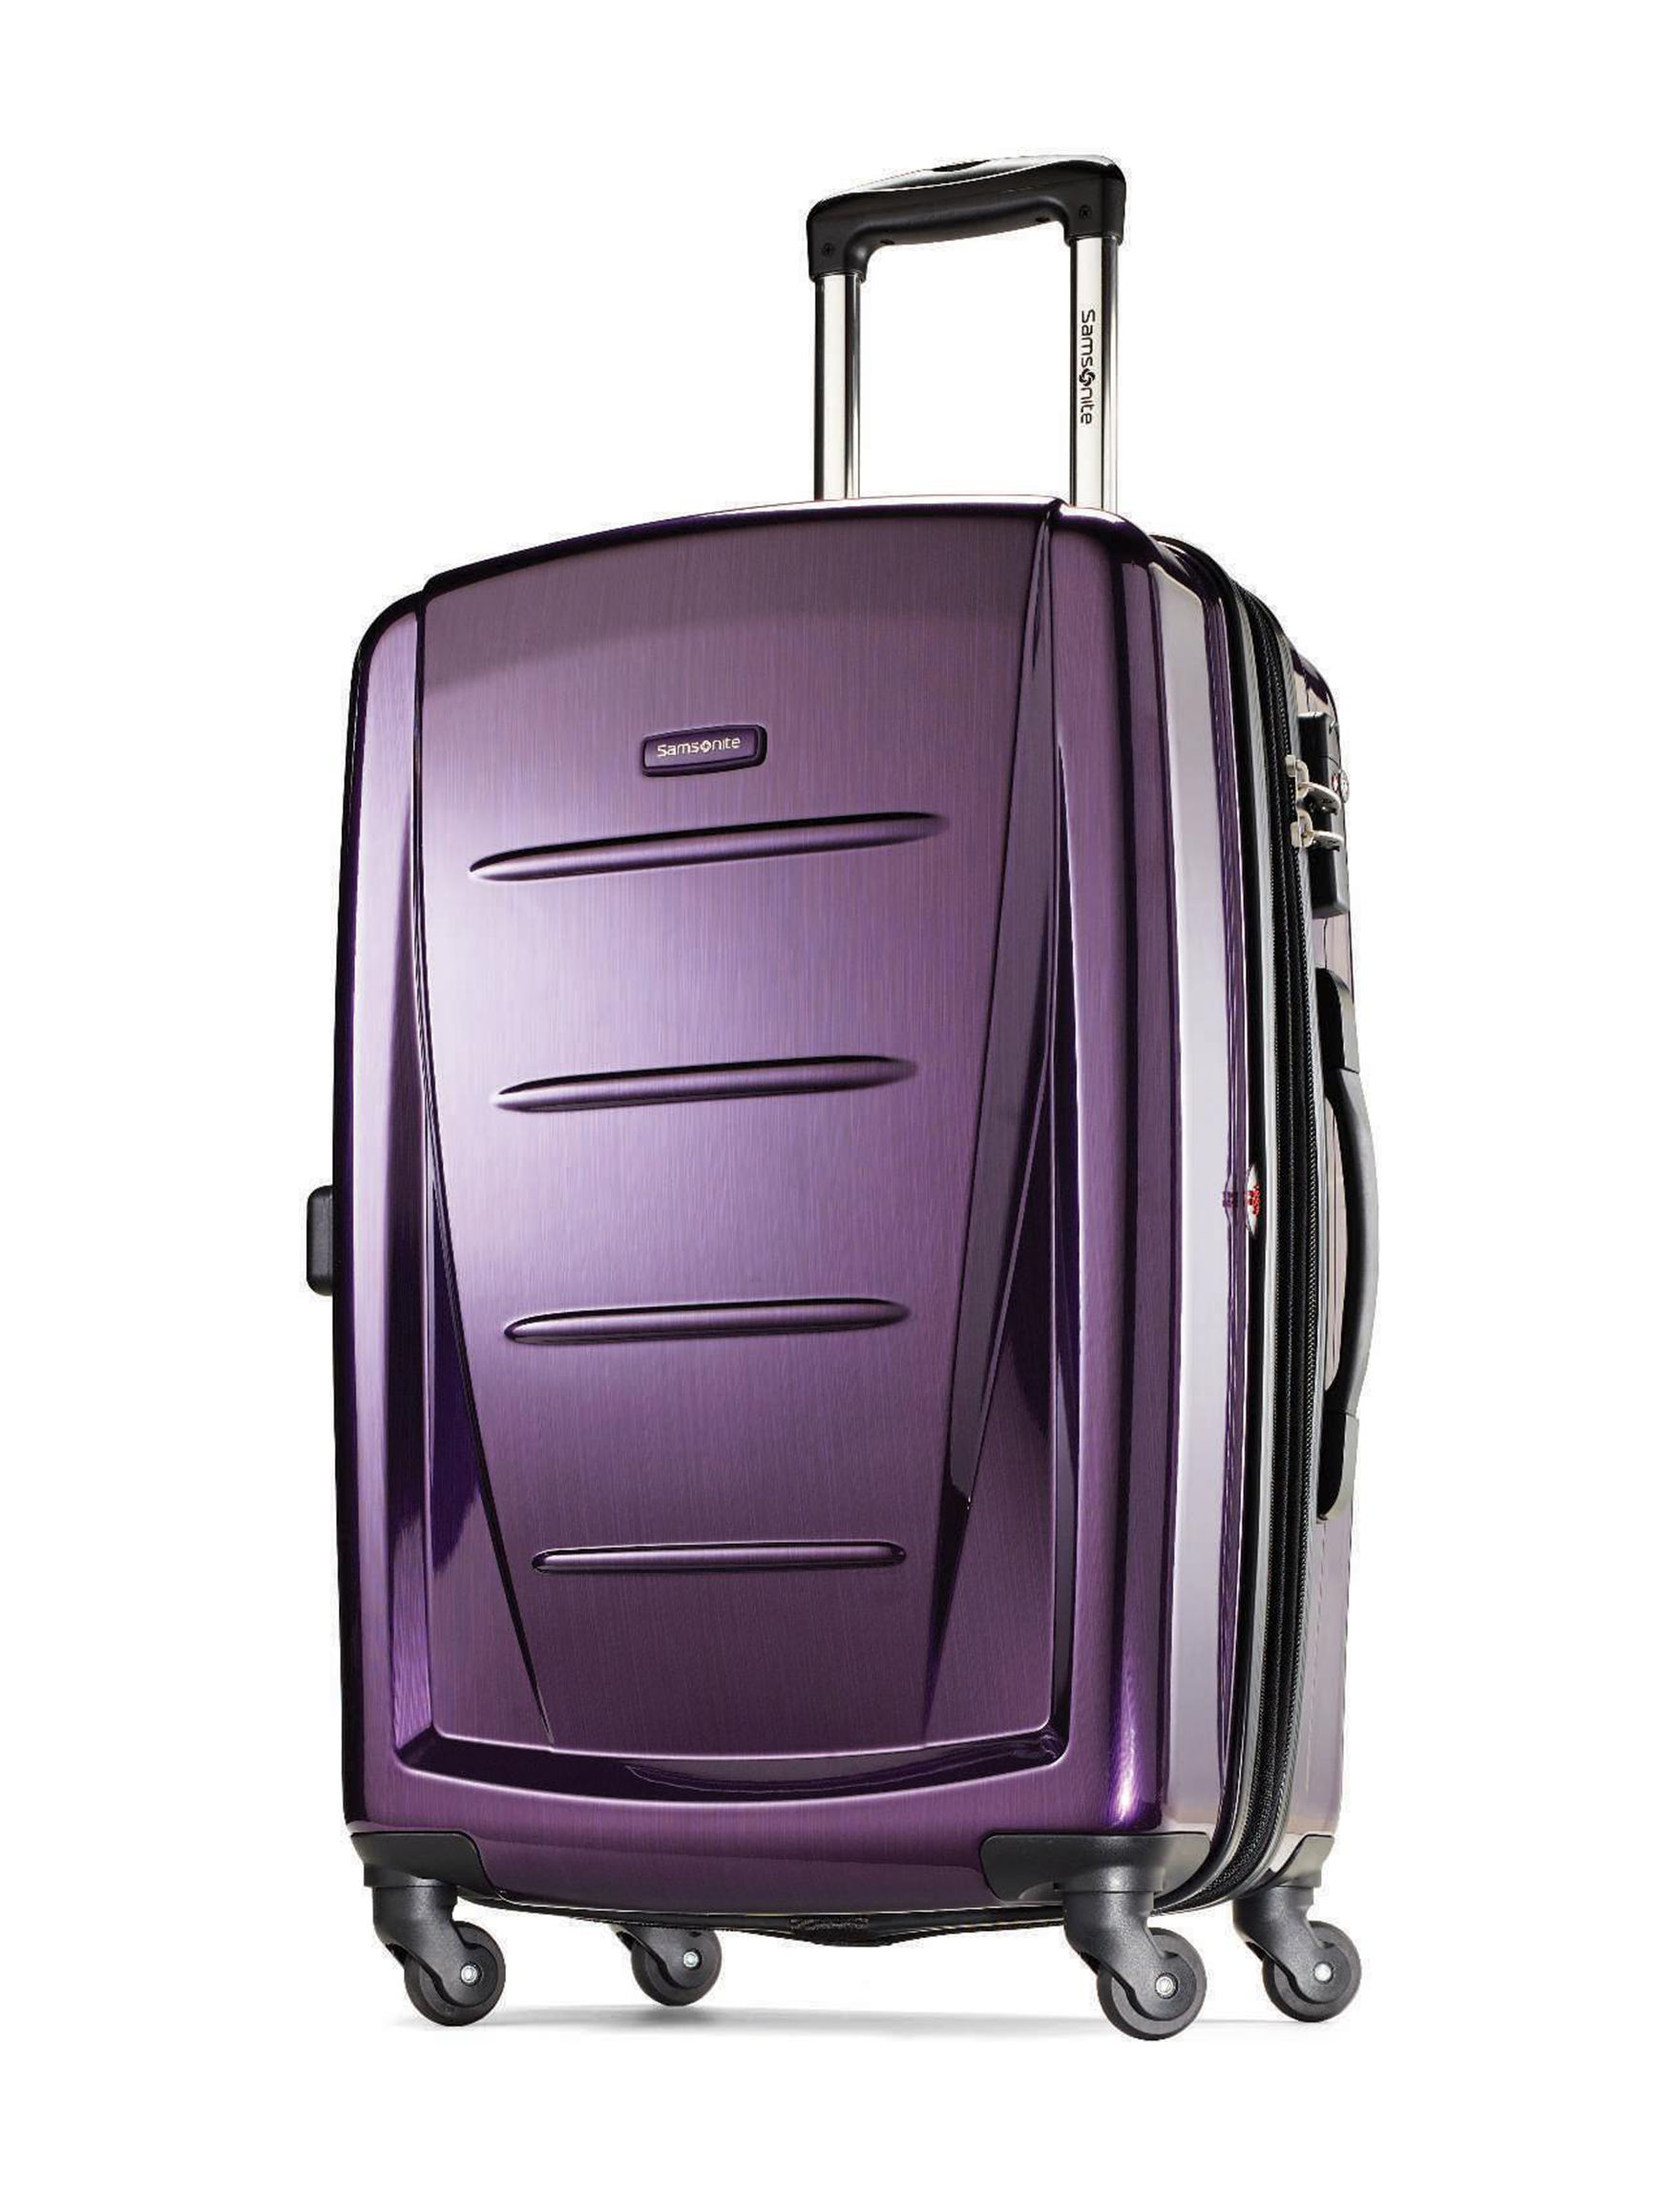 Samsonite Purple Upright Spinners